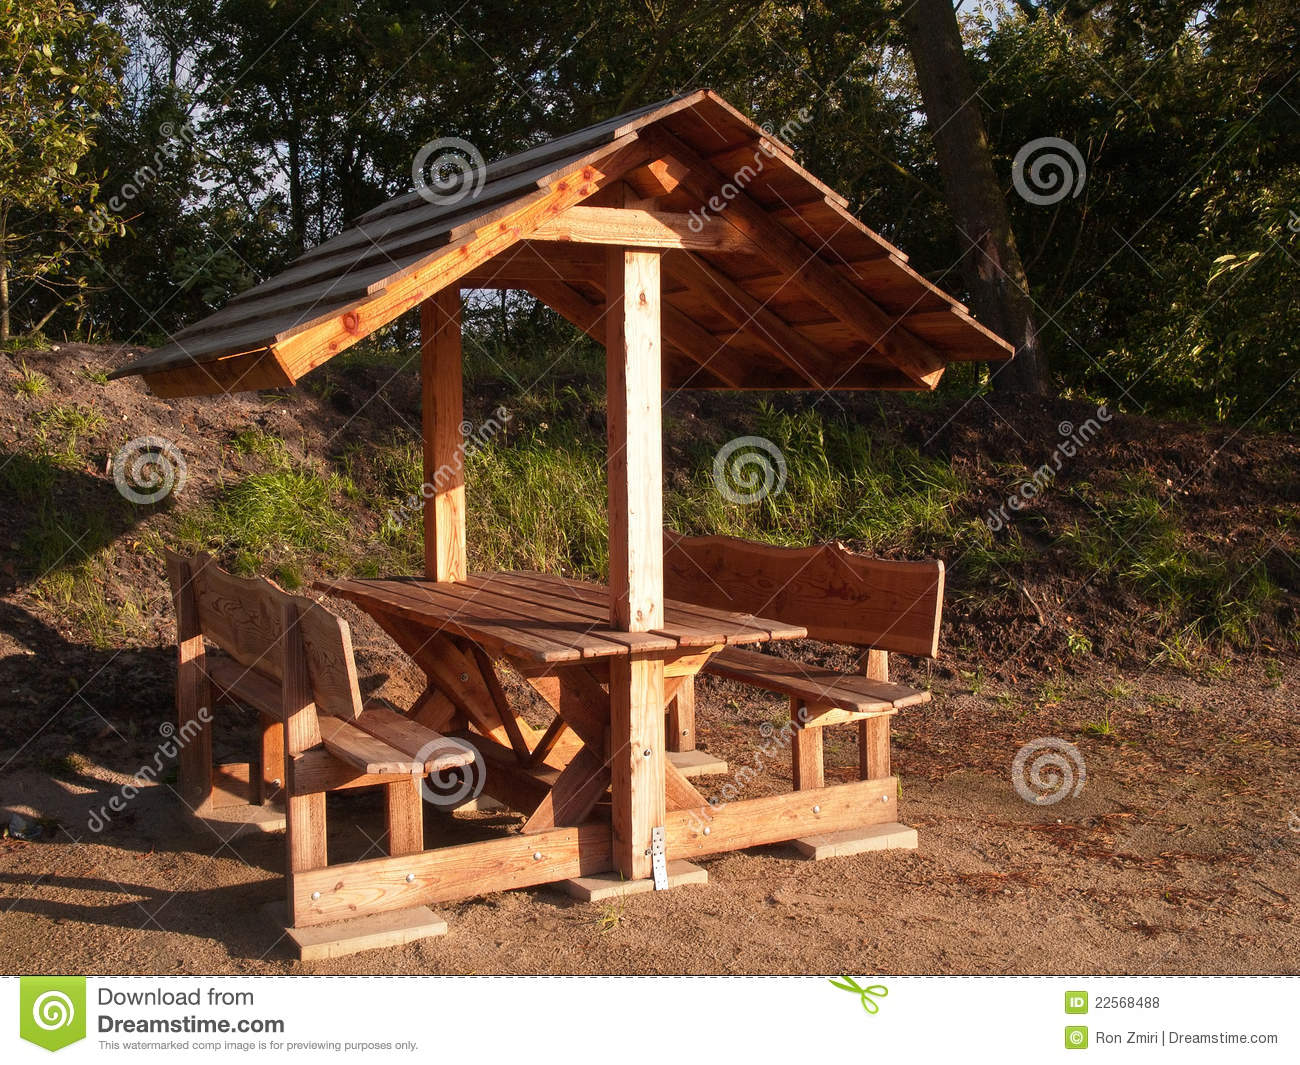 Picnic Table Royalty Free Stock Photos - Image: 22568488